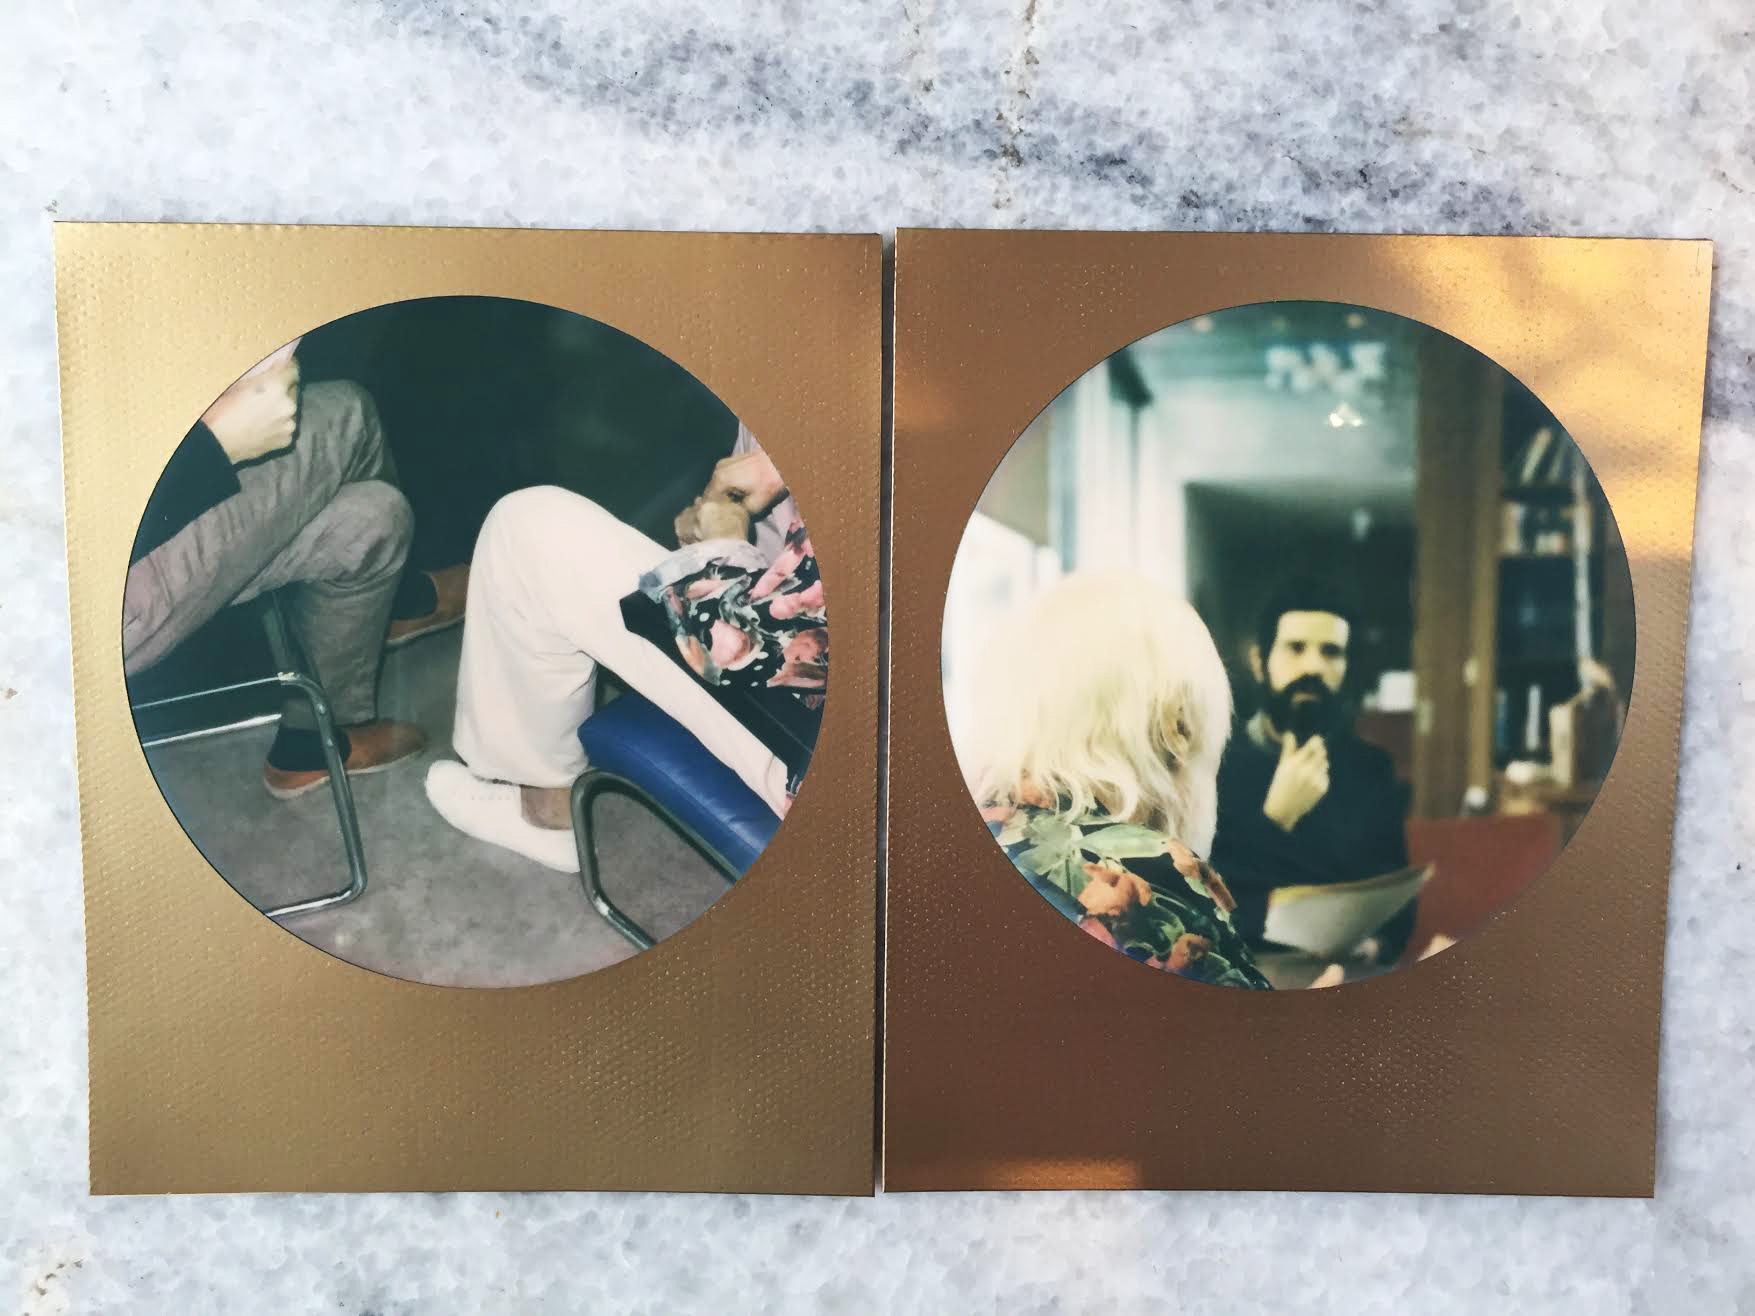 john_baldessari_devendra_banhart_issue_3_autre.jpg